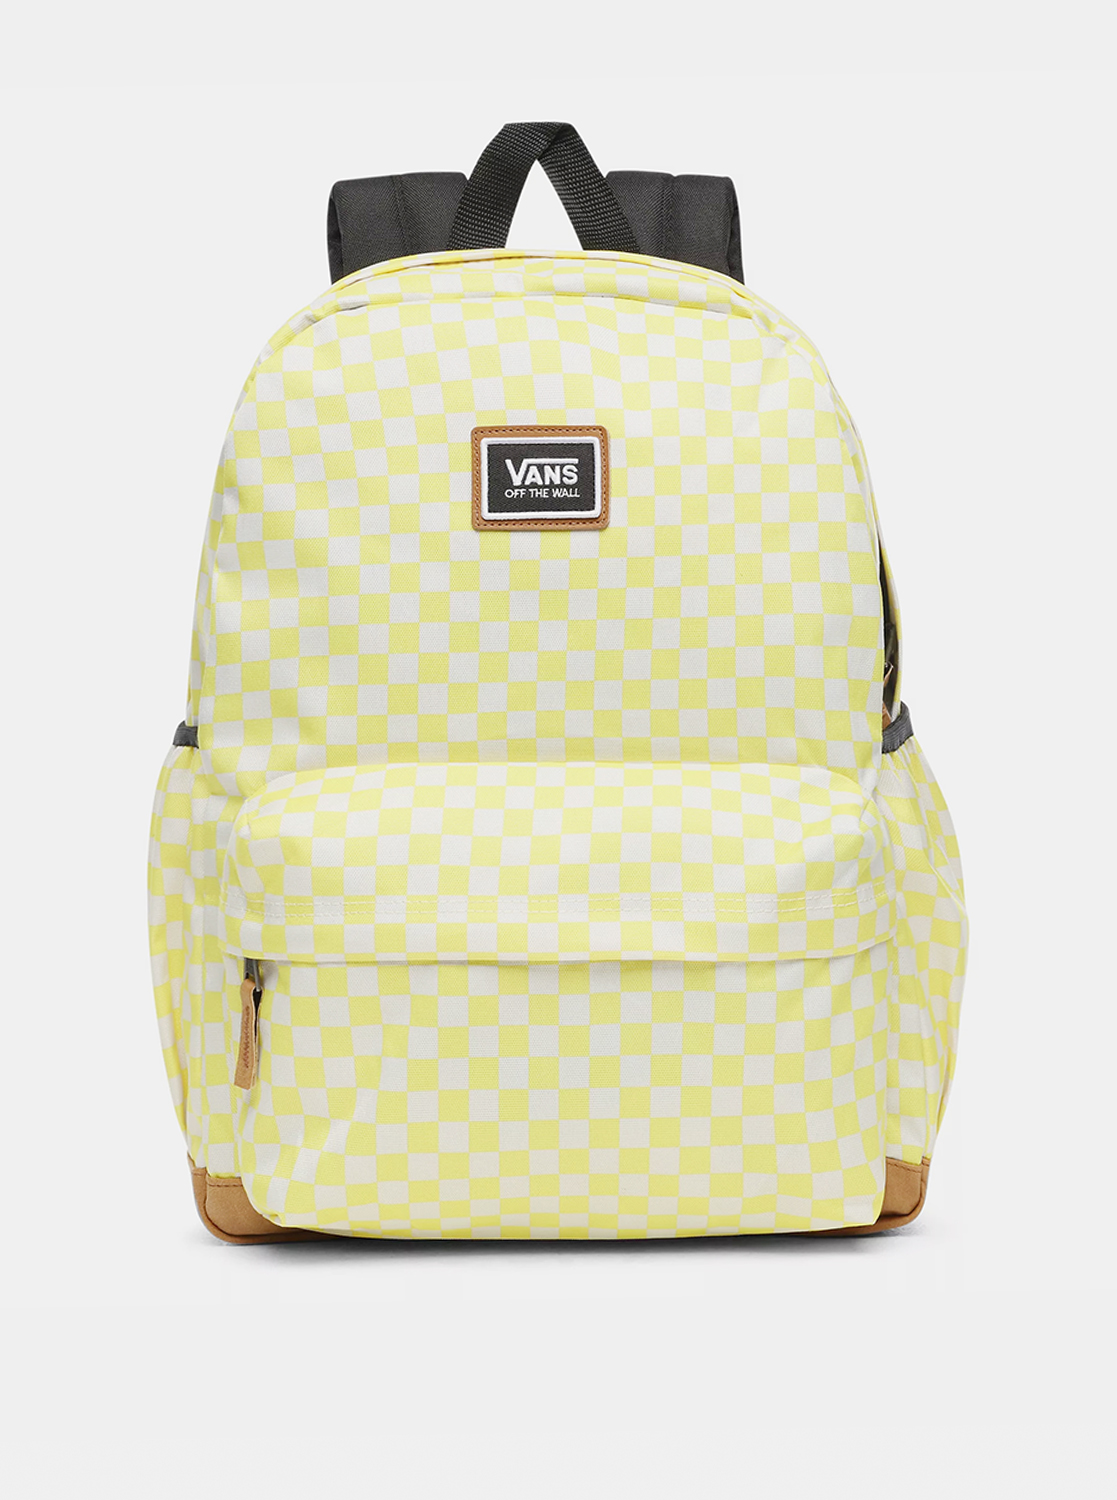 Yellow patterned backpack VANS 27 l